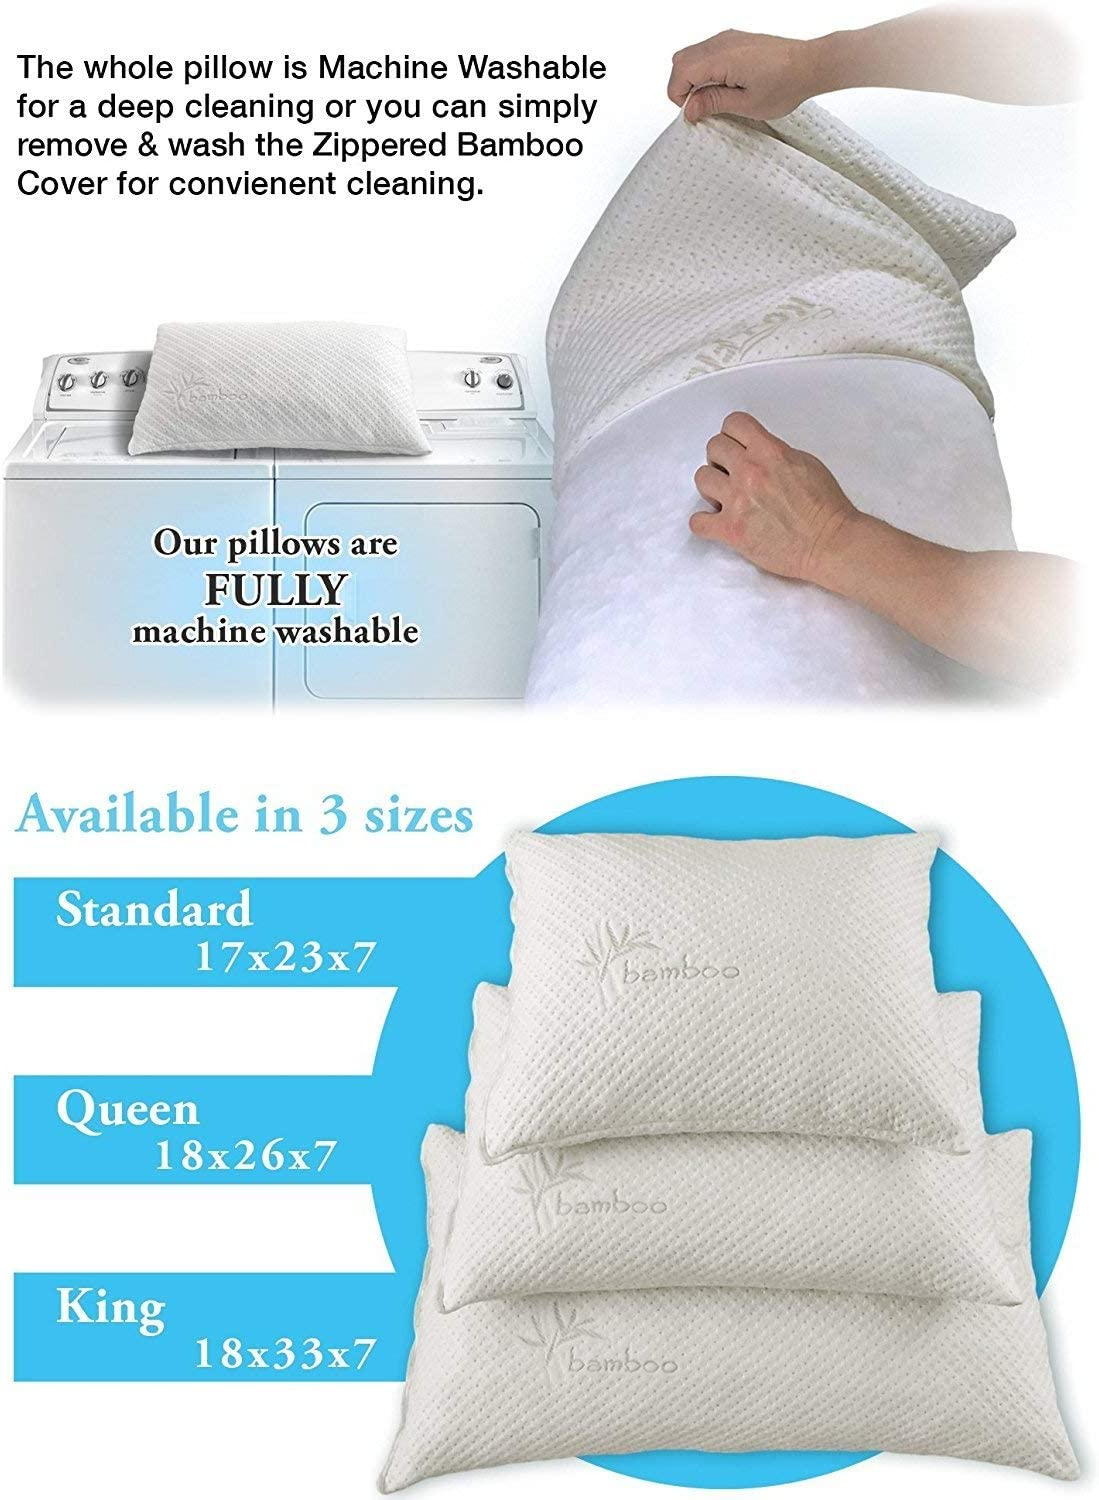 Materials fill inside the pillow